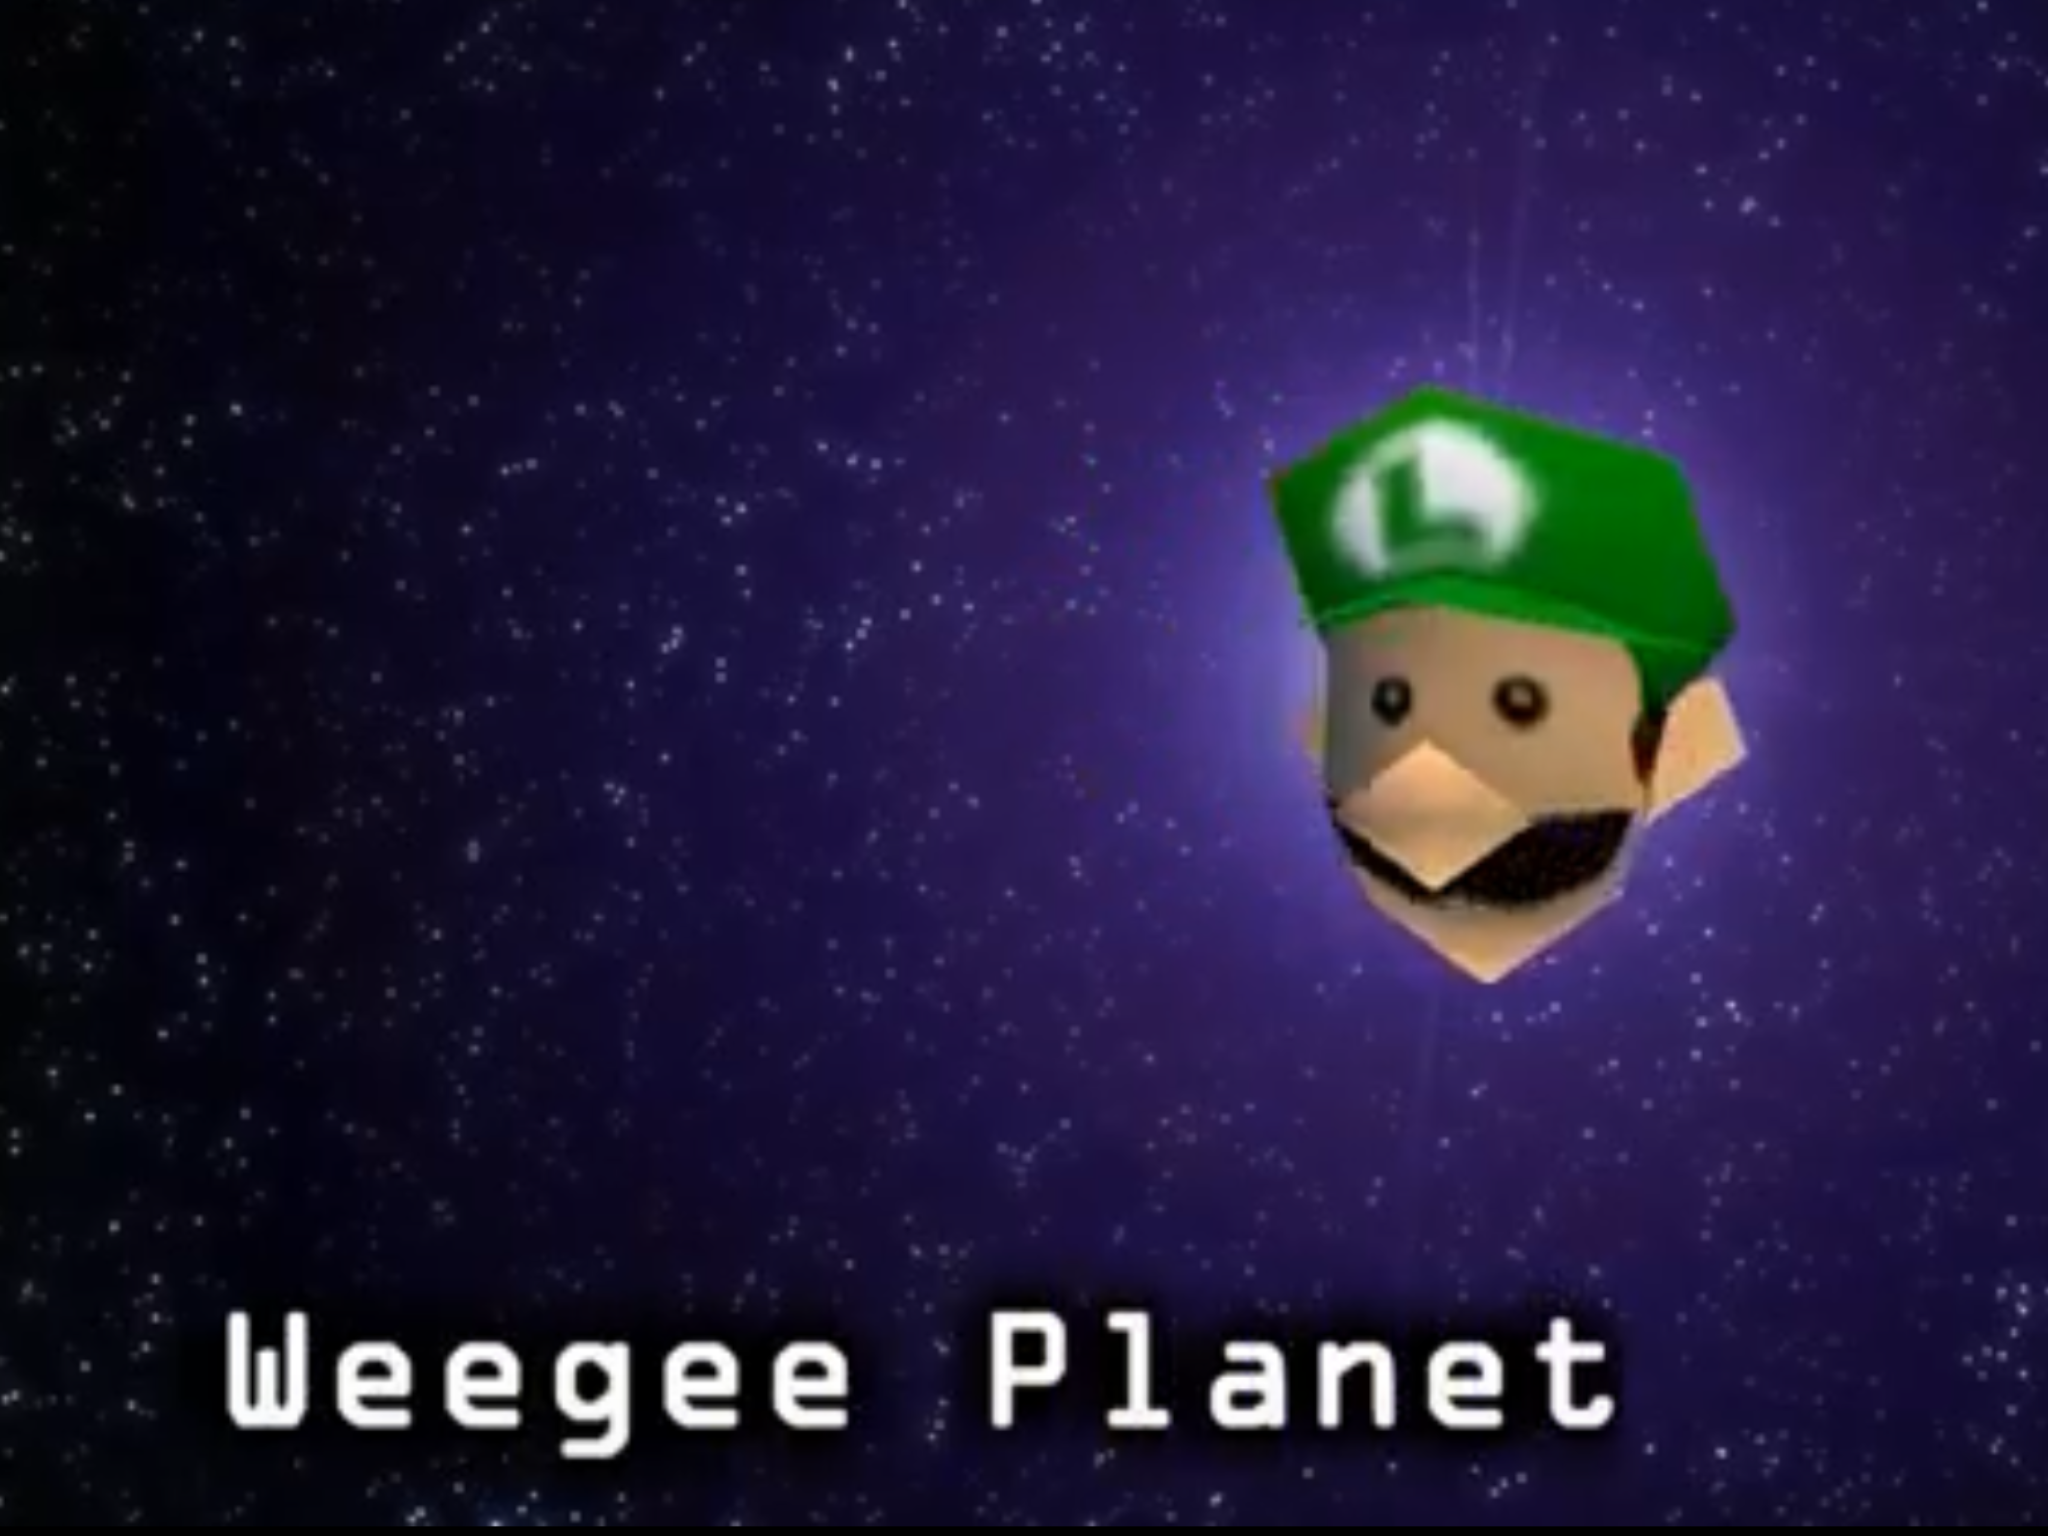 Weegee Planet